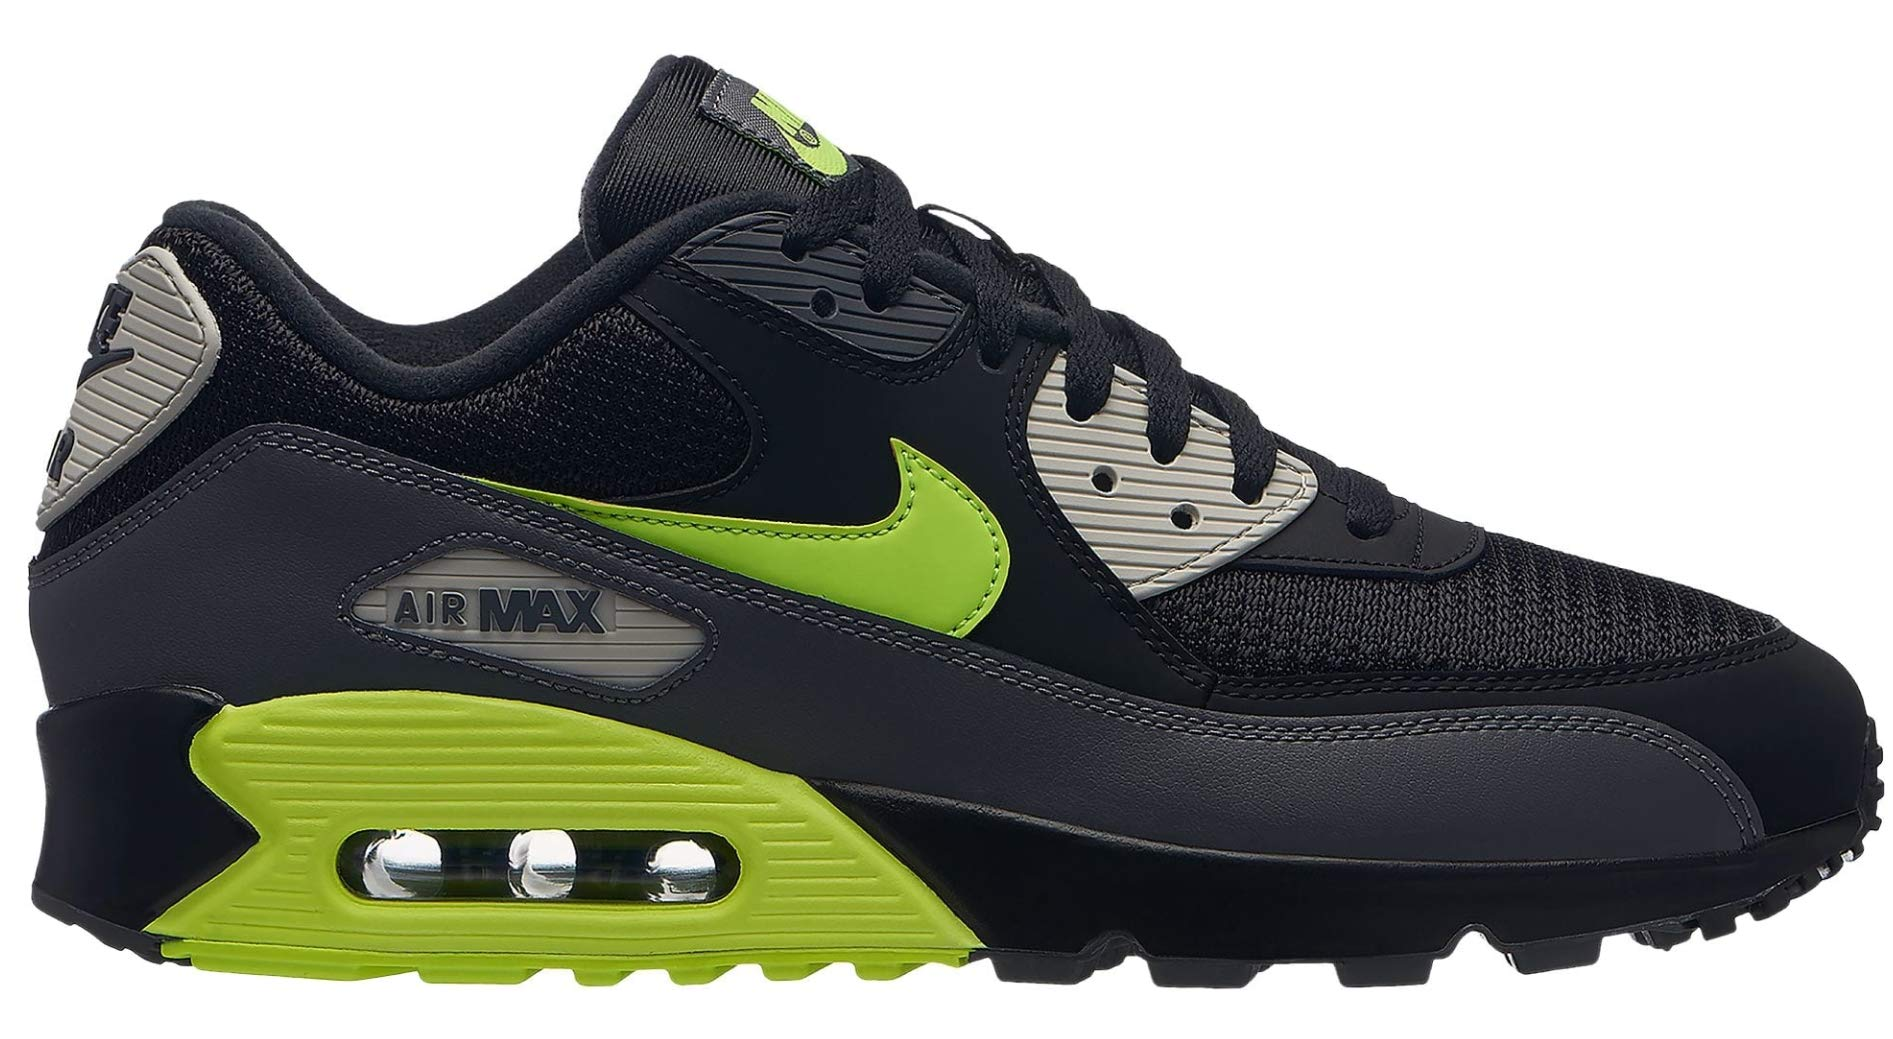 cheap for discount 18579 3462d Galleon - Nike Mens Air Max 90 Essential Running Shoes Dark Grey Volt Black Bone  AJ1285-015 Size 15